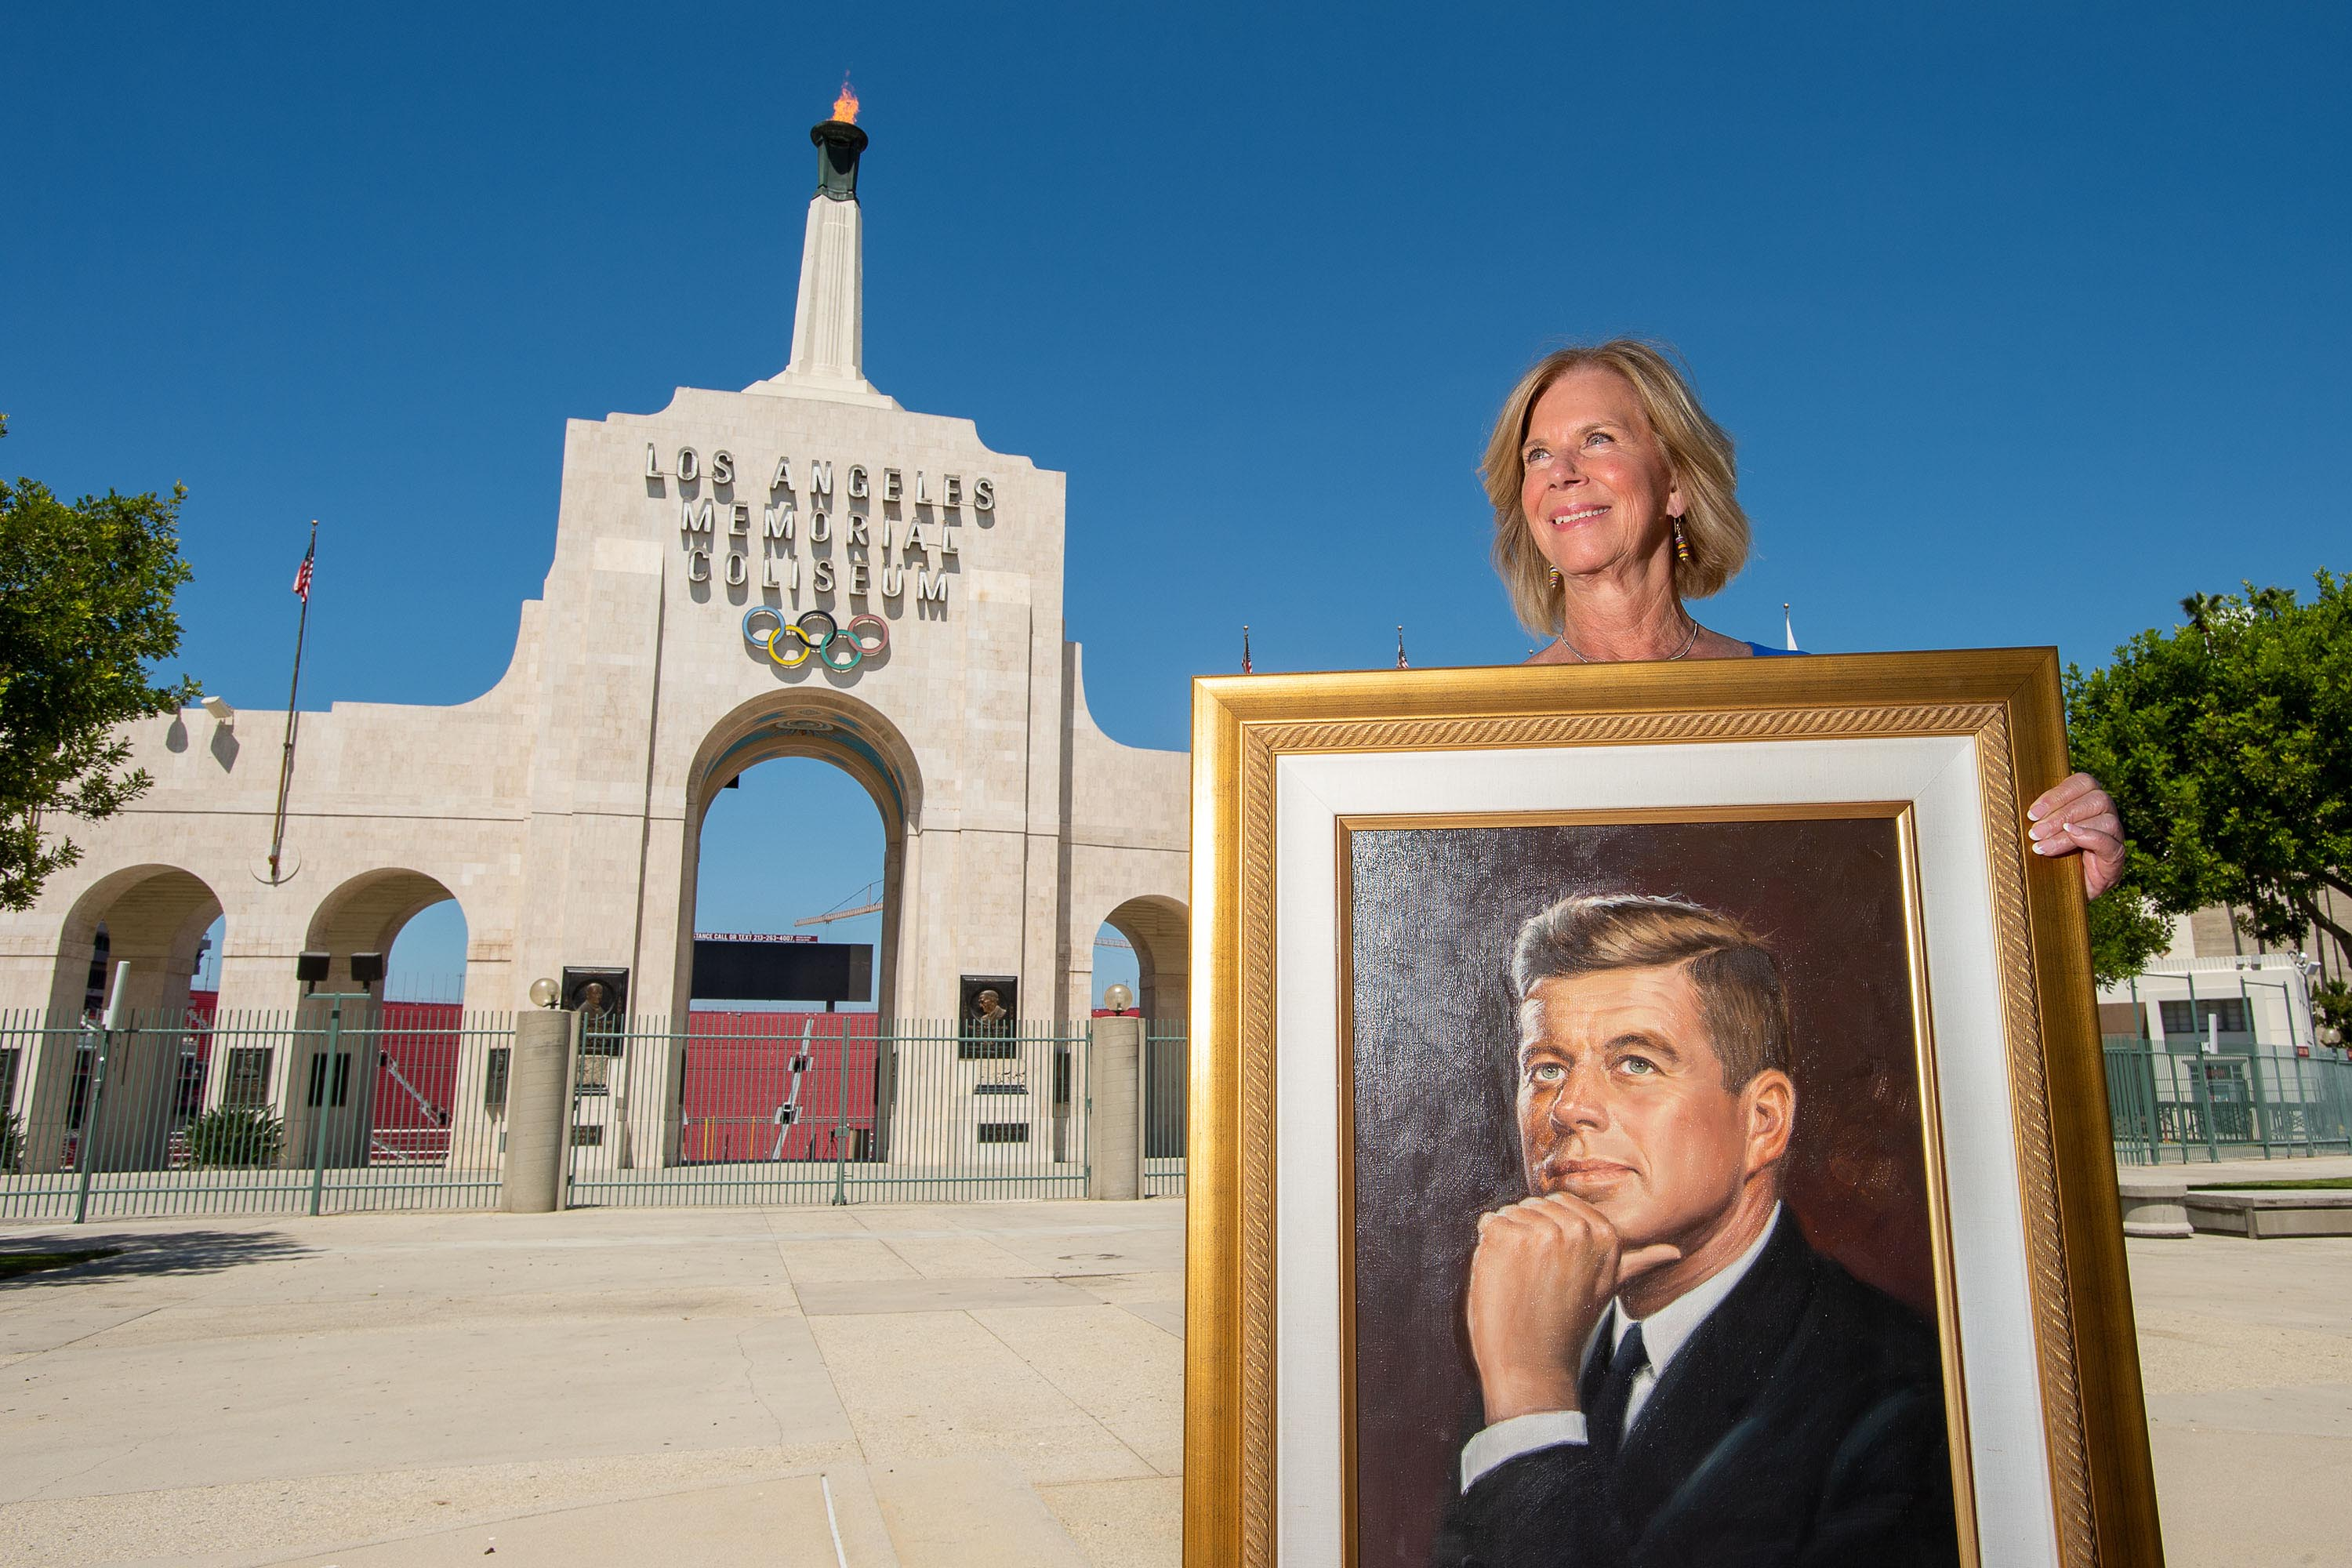 District 4 – Supervisor Janice Hahn<br> <b>July 15, 2020 – LA Memorial Coliseum flame lighting in honor of President John F. Kennedy. </b><br> <i>Photo by Bryan Chan / Board of Supervisors</i>